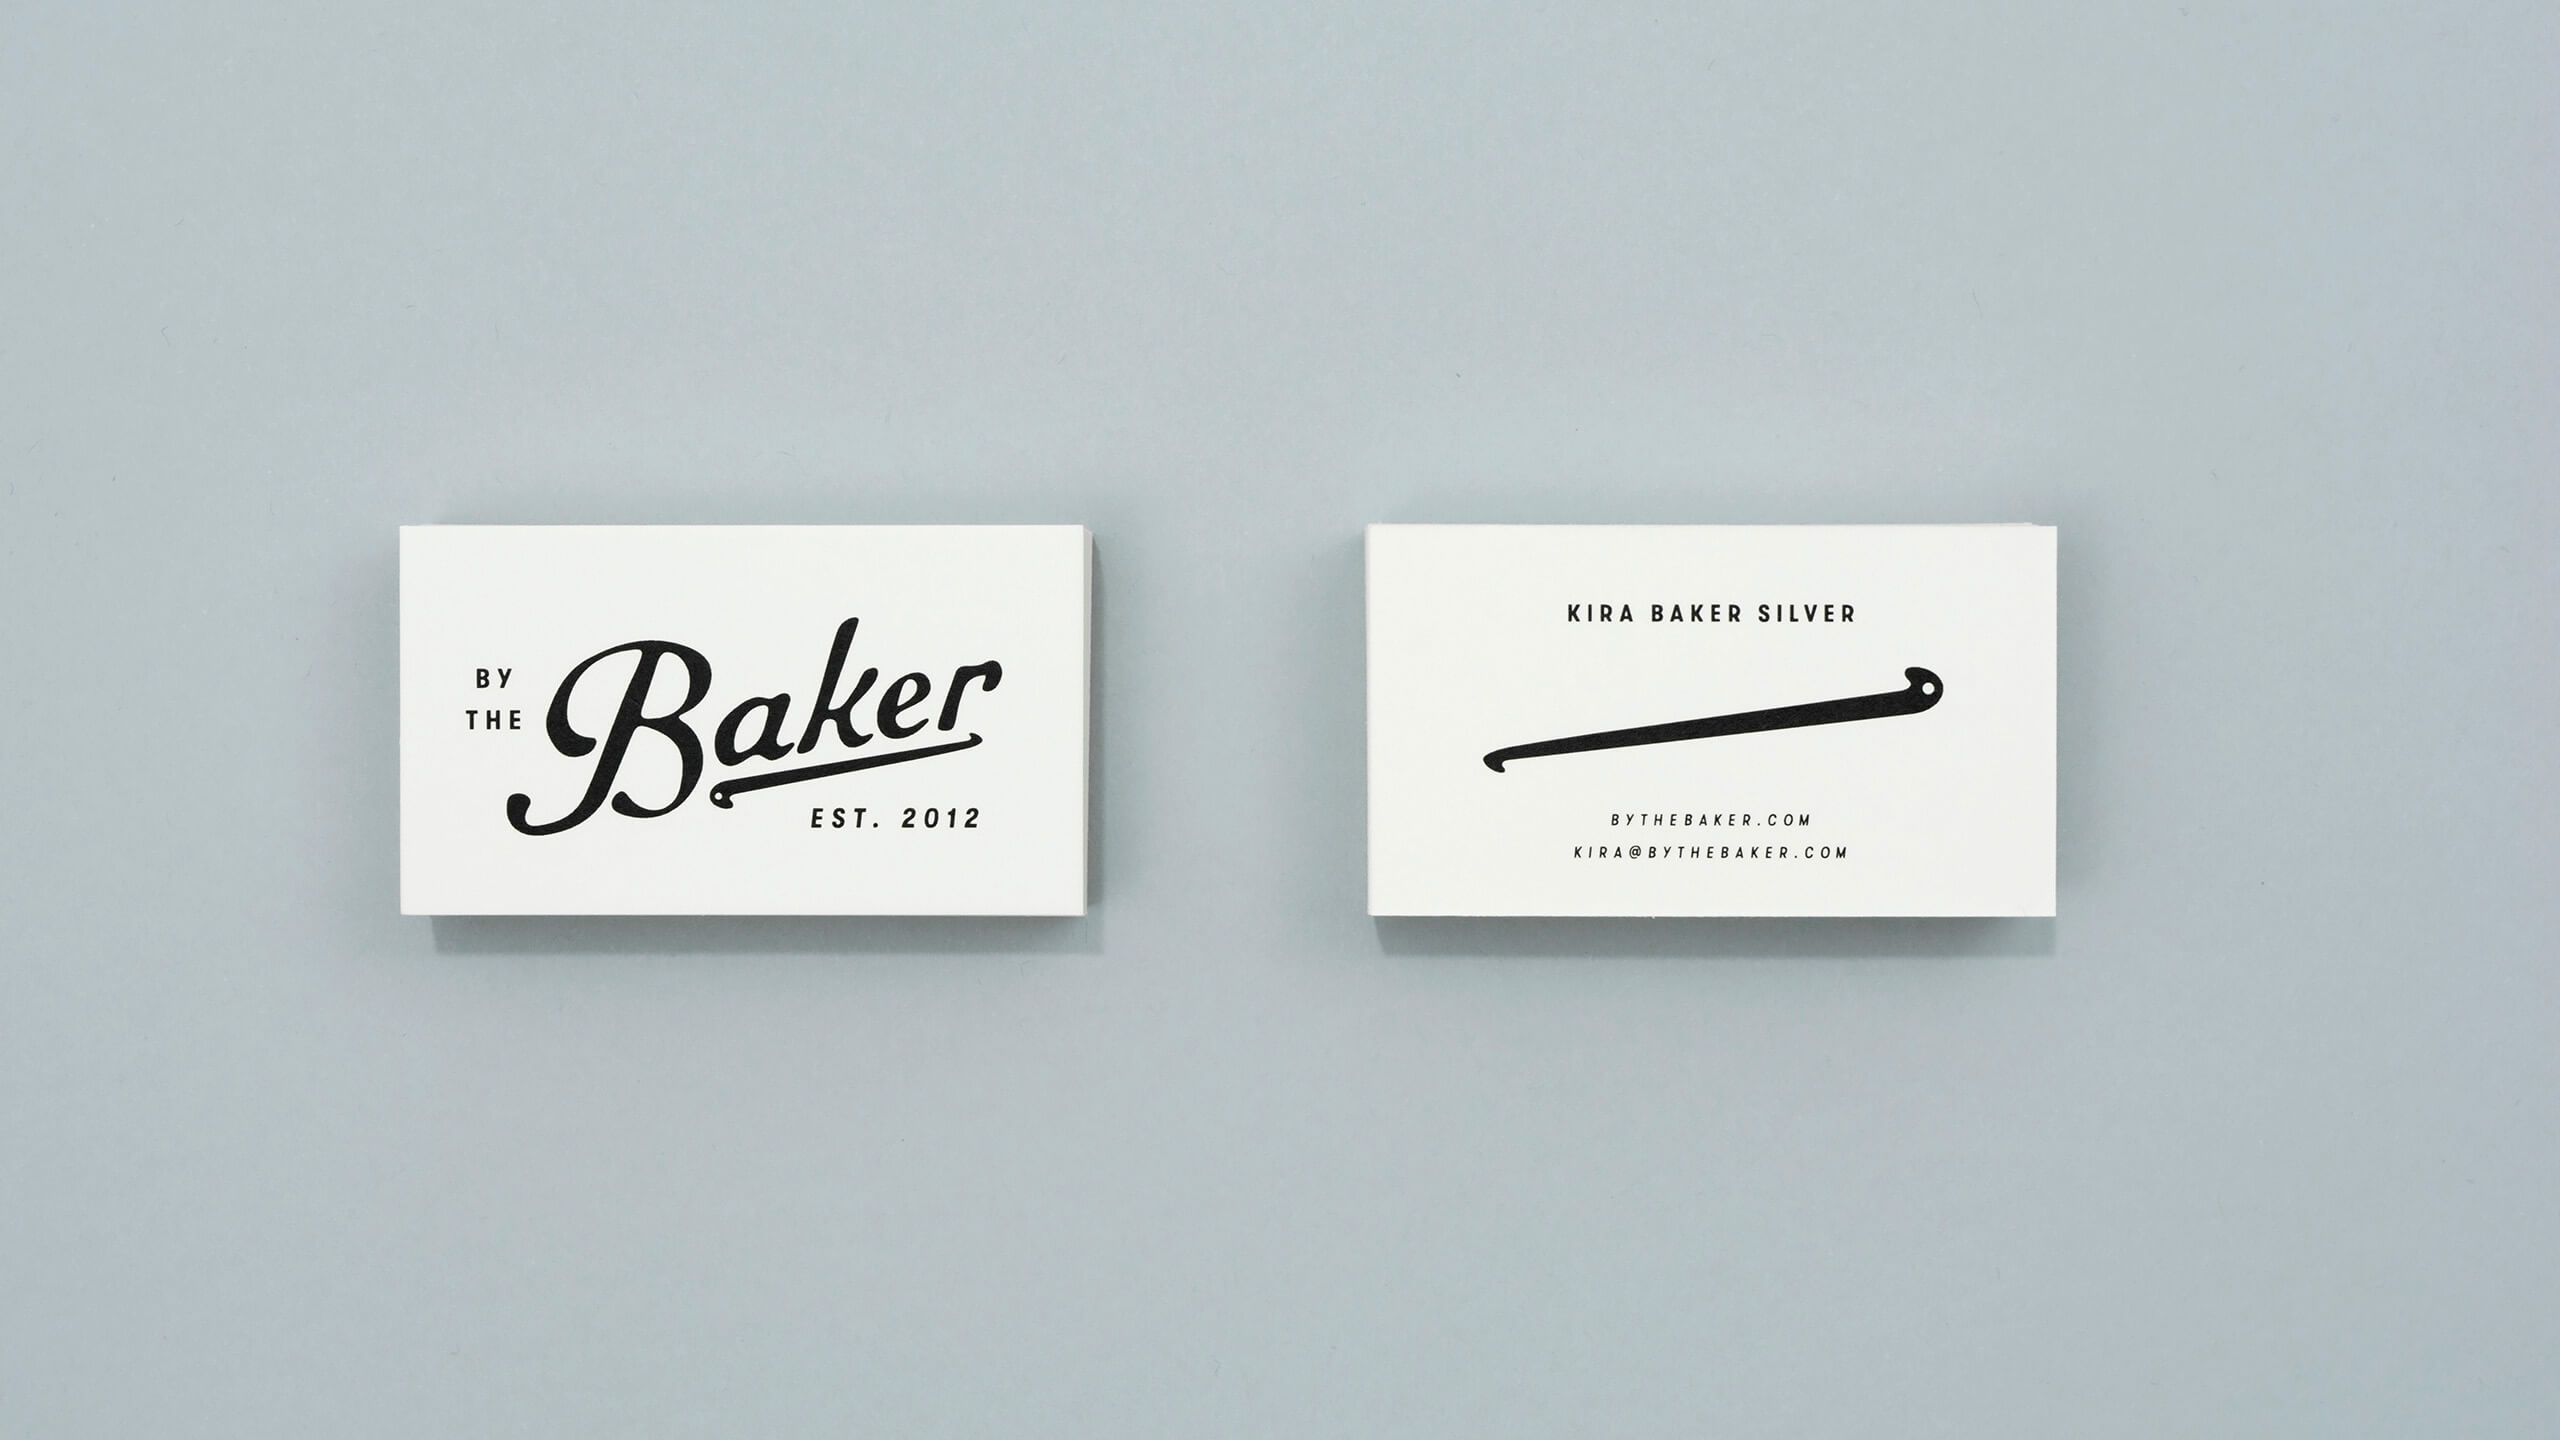 bueno-bythebaker-business-cards